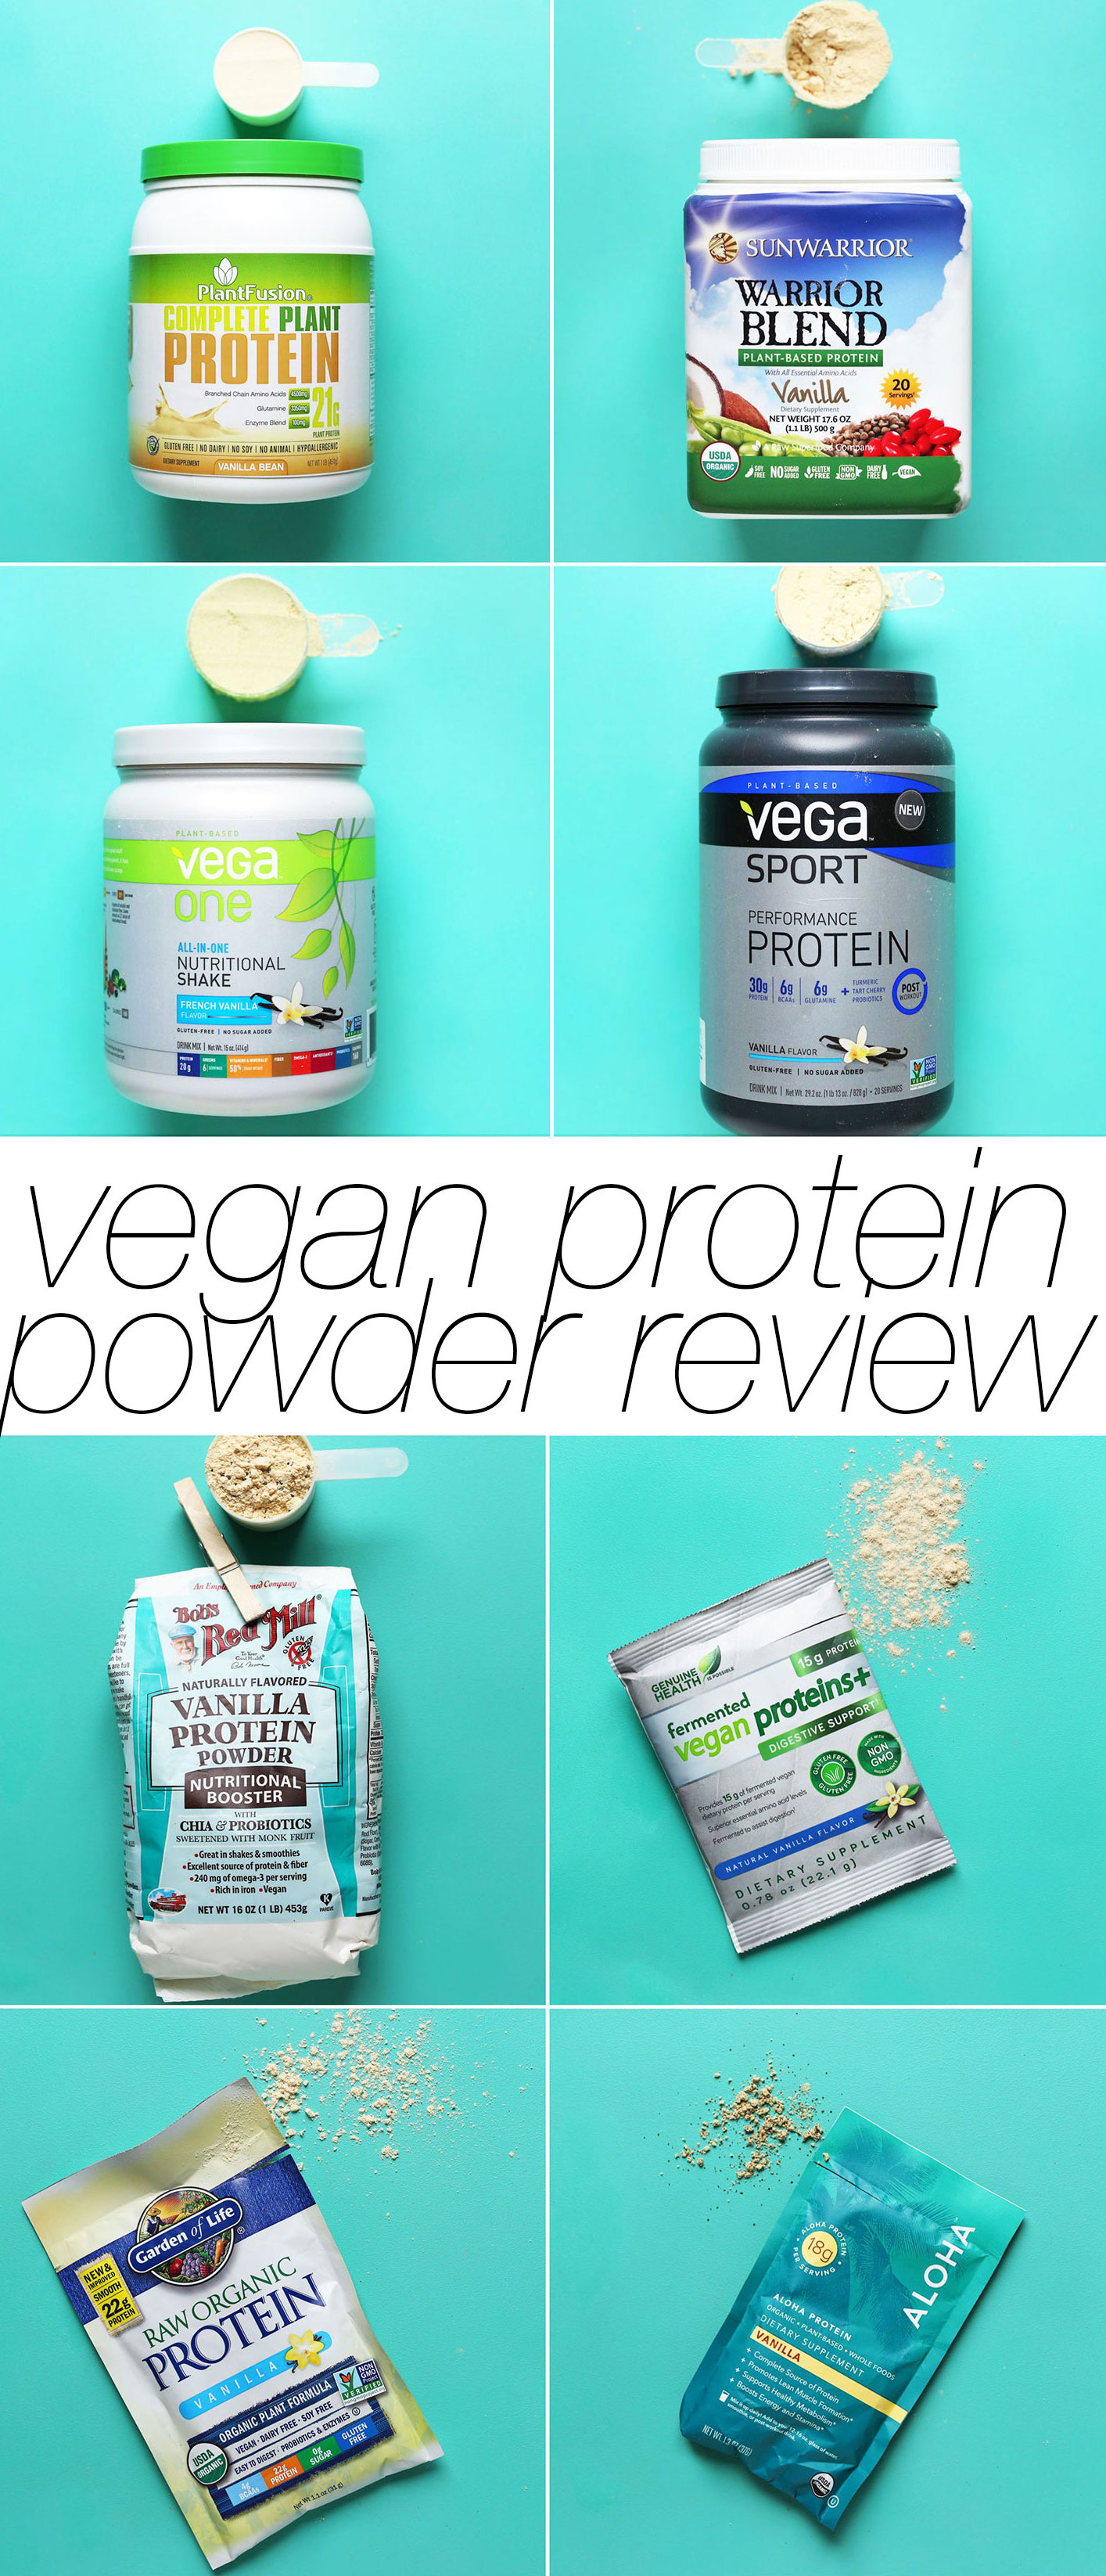 Photos of protein powders tested as part of our unbiased vegan protein powders review